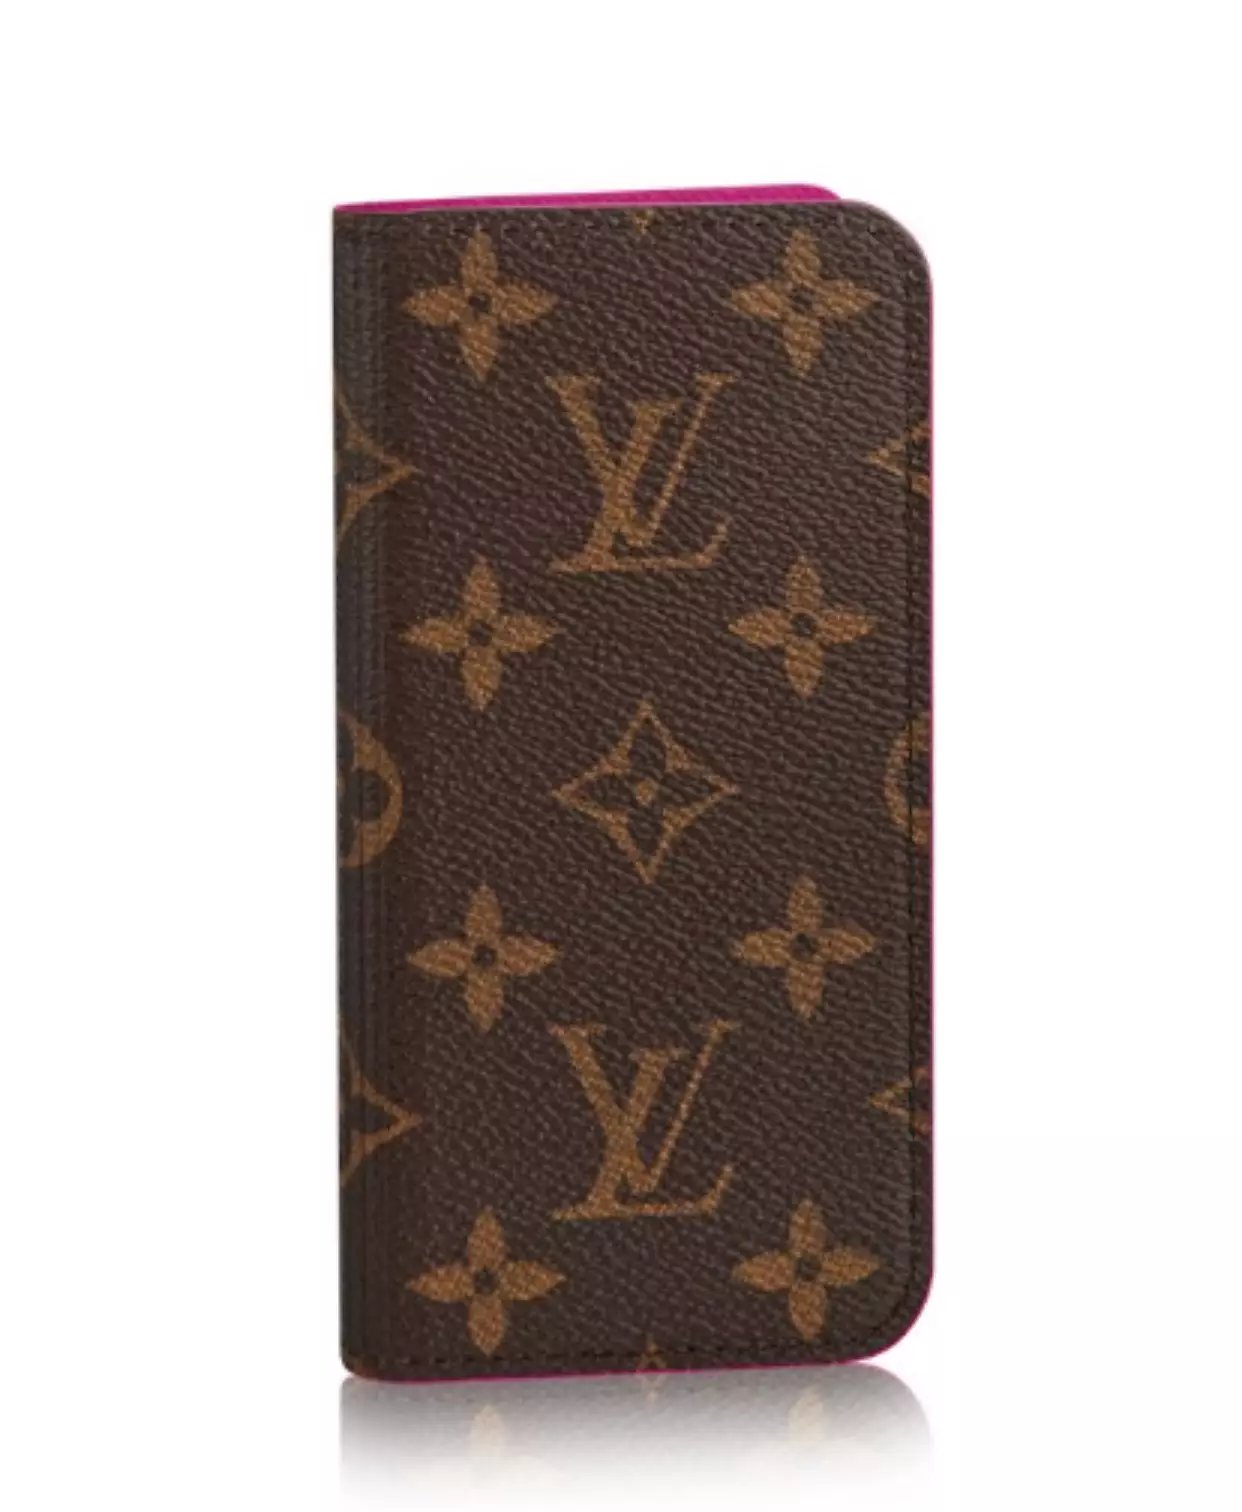 holzhüllen iphone coole iphone hüllen Louis Vuitton iphone7 hülle bumper hülle iphone 7 ca7 elbst gestalten iphone flip ca7 elbst gestalten iphone 6 iphone etui leder iphone schutzhülle